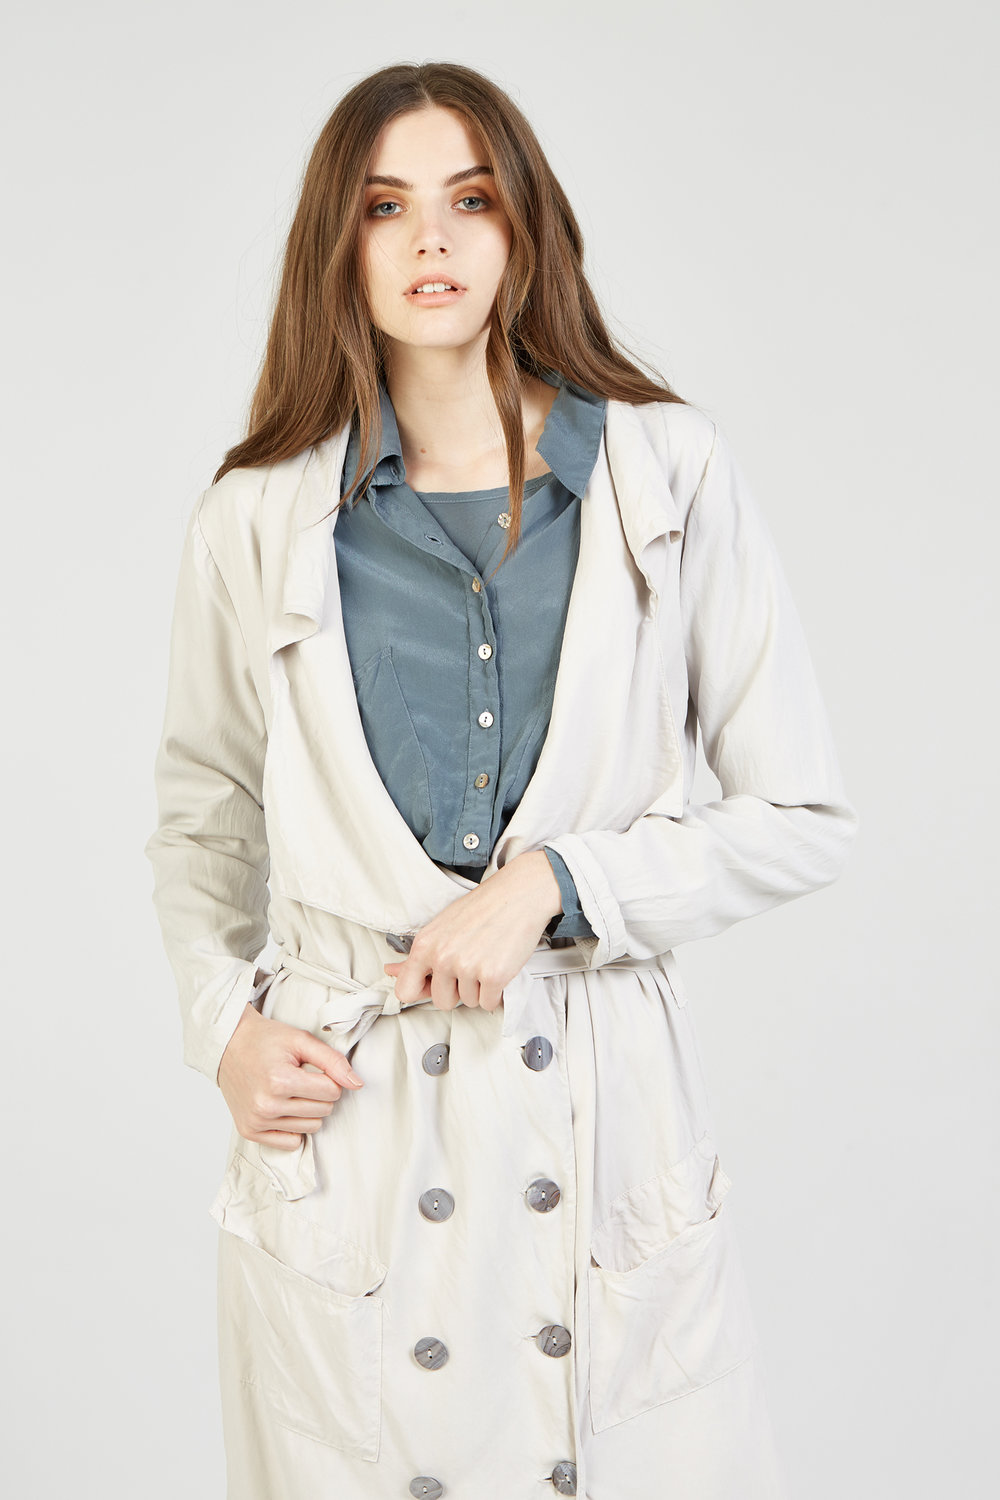 GIGI LS DRESS & CROPPED SHIRT STEEL. TRENCH STONE